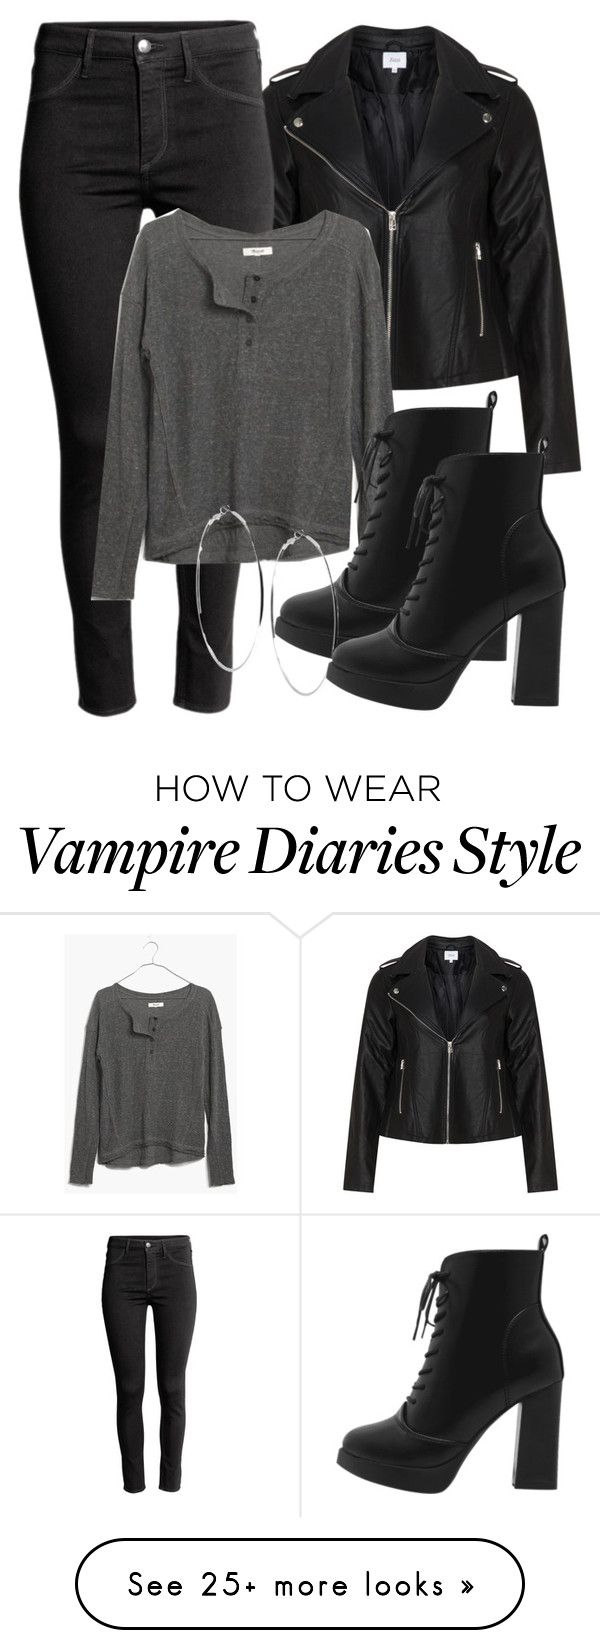 """""""Damon Inspired Outfit - The Vampire Diaries / The Originals"""" by fangsandfashion on Polyvore featuring Zizzi, H&M, Madewell and GUESS"""